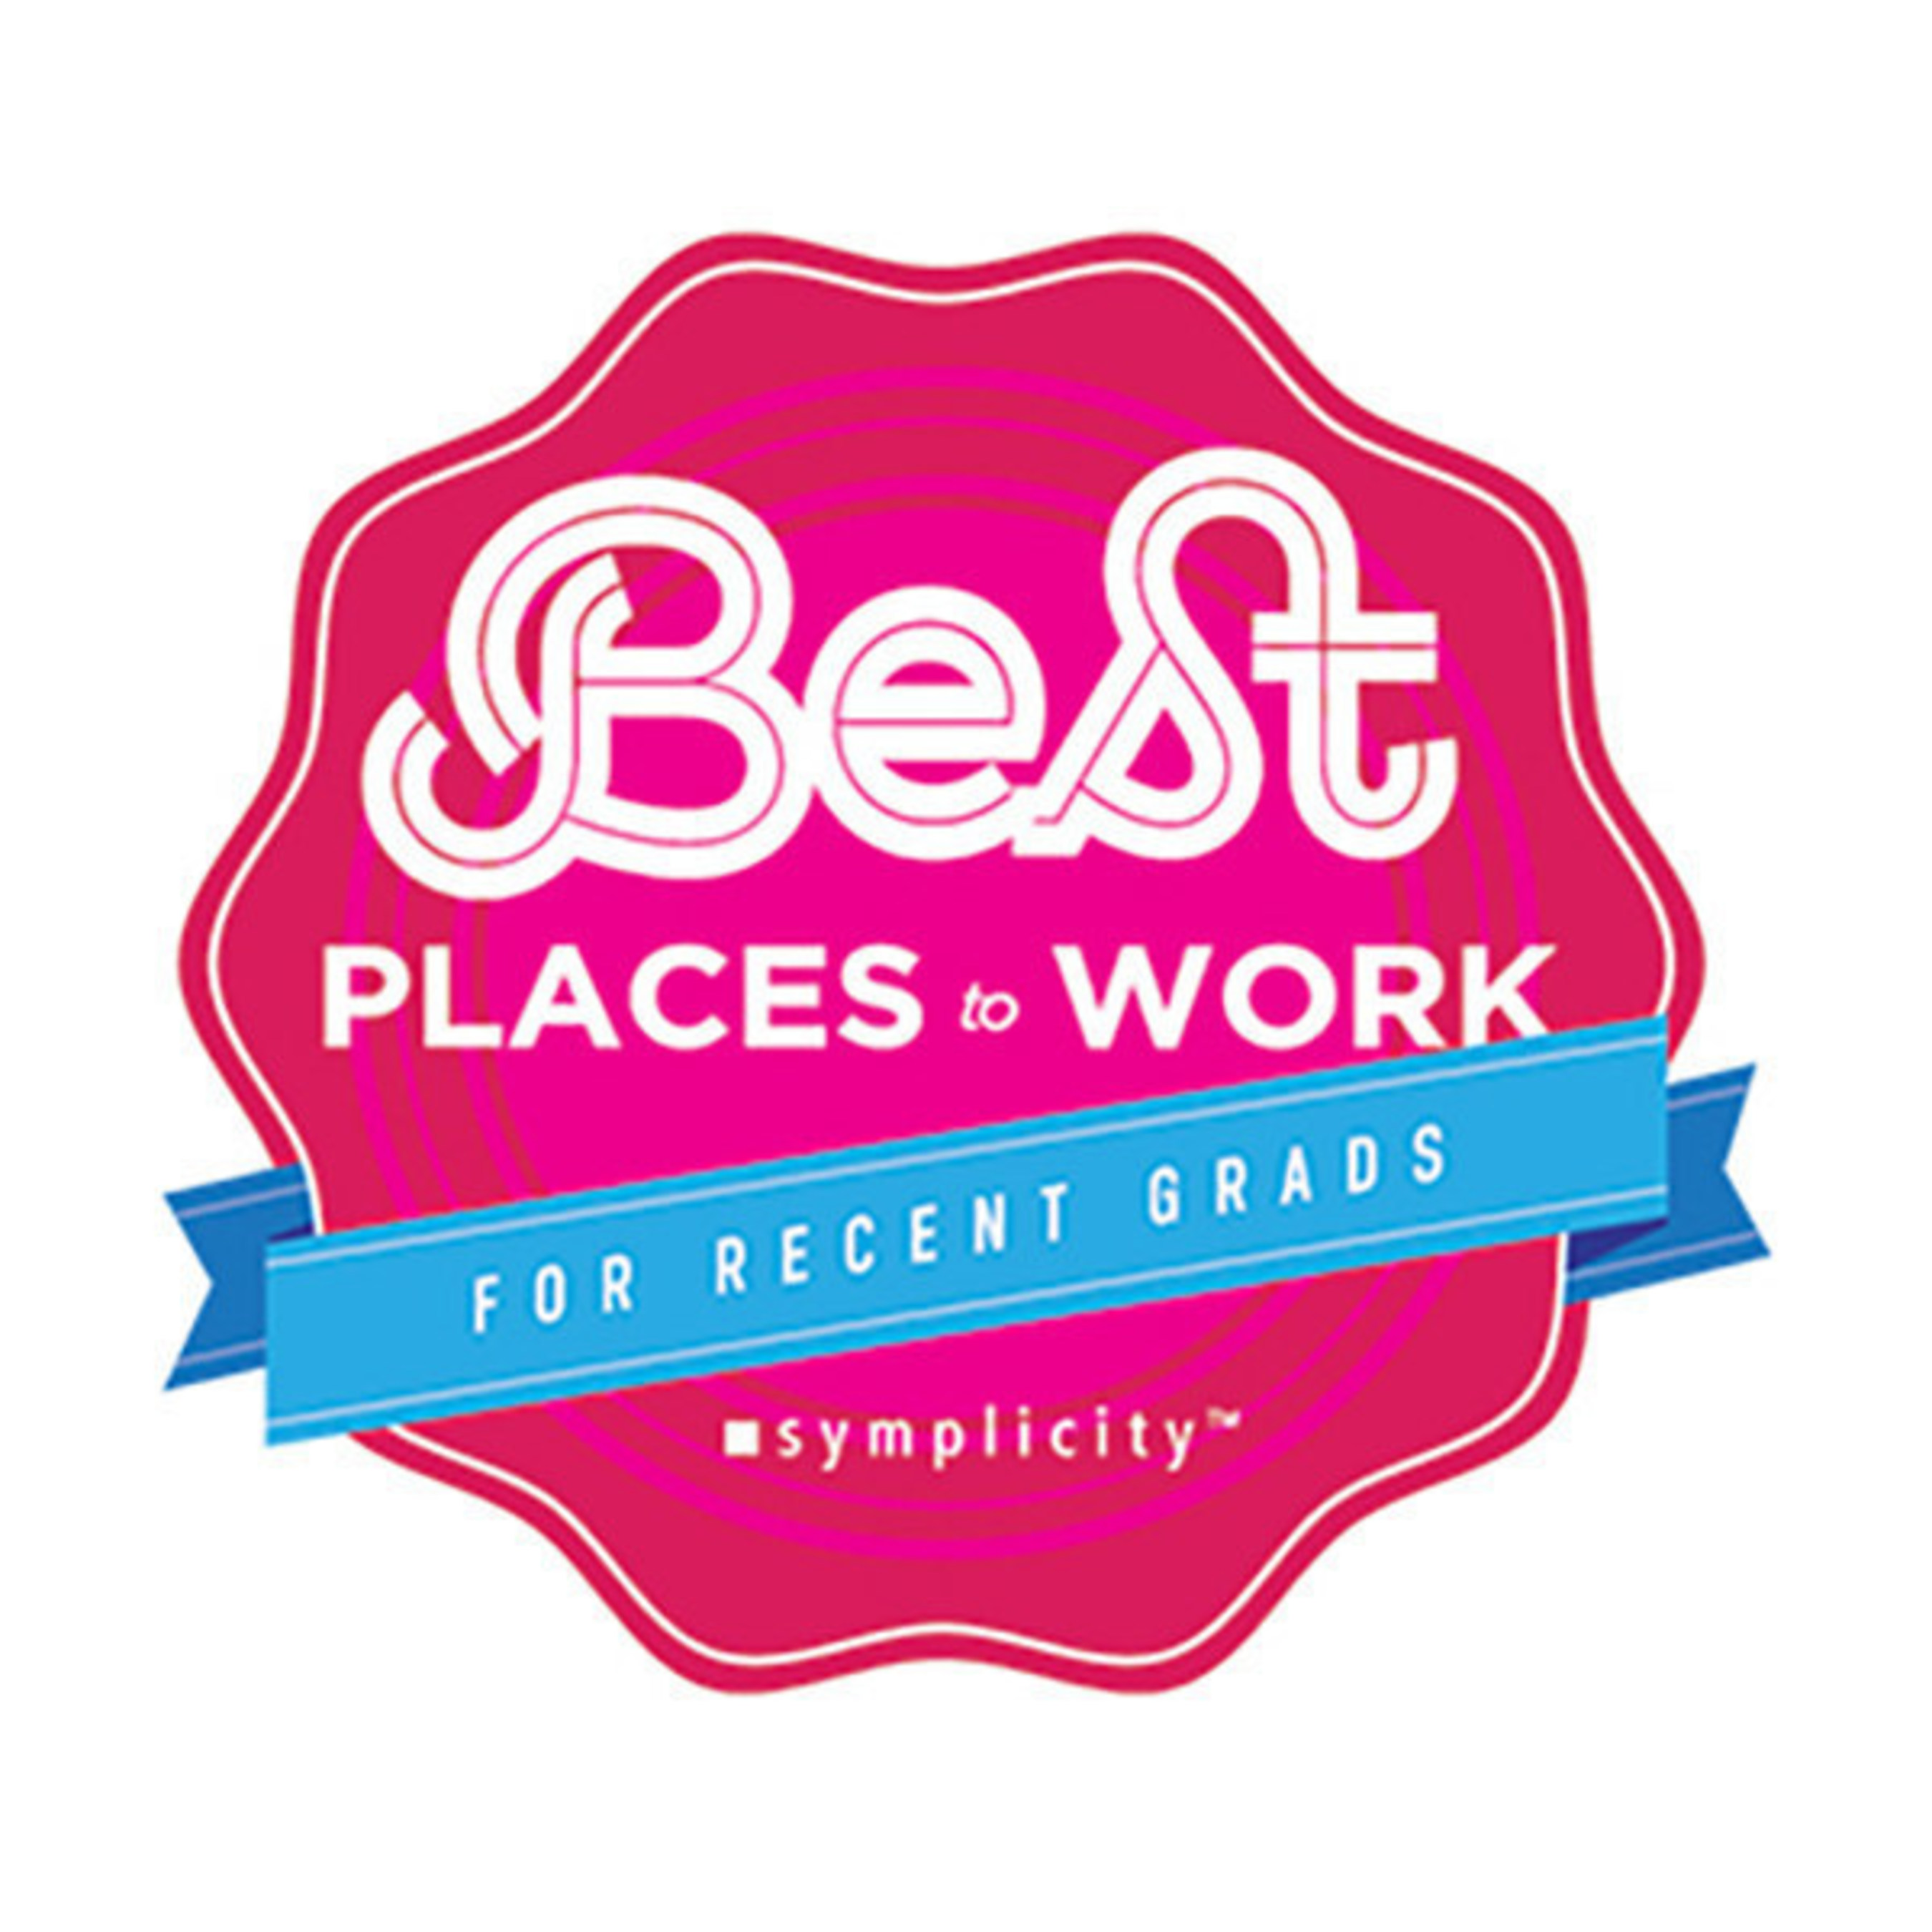 LBMC Named One Of 25 Best Places To Work In The Nation For Recent Grads